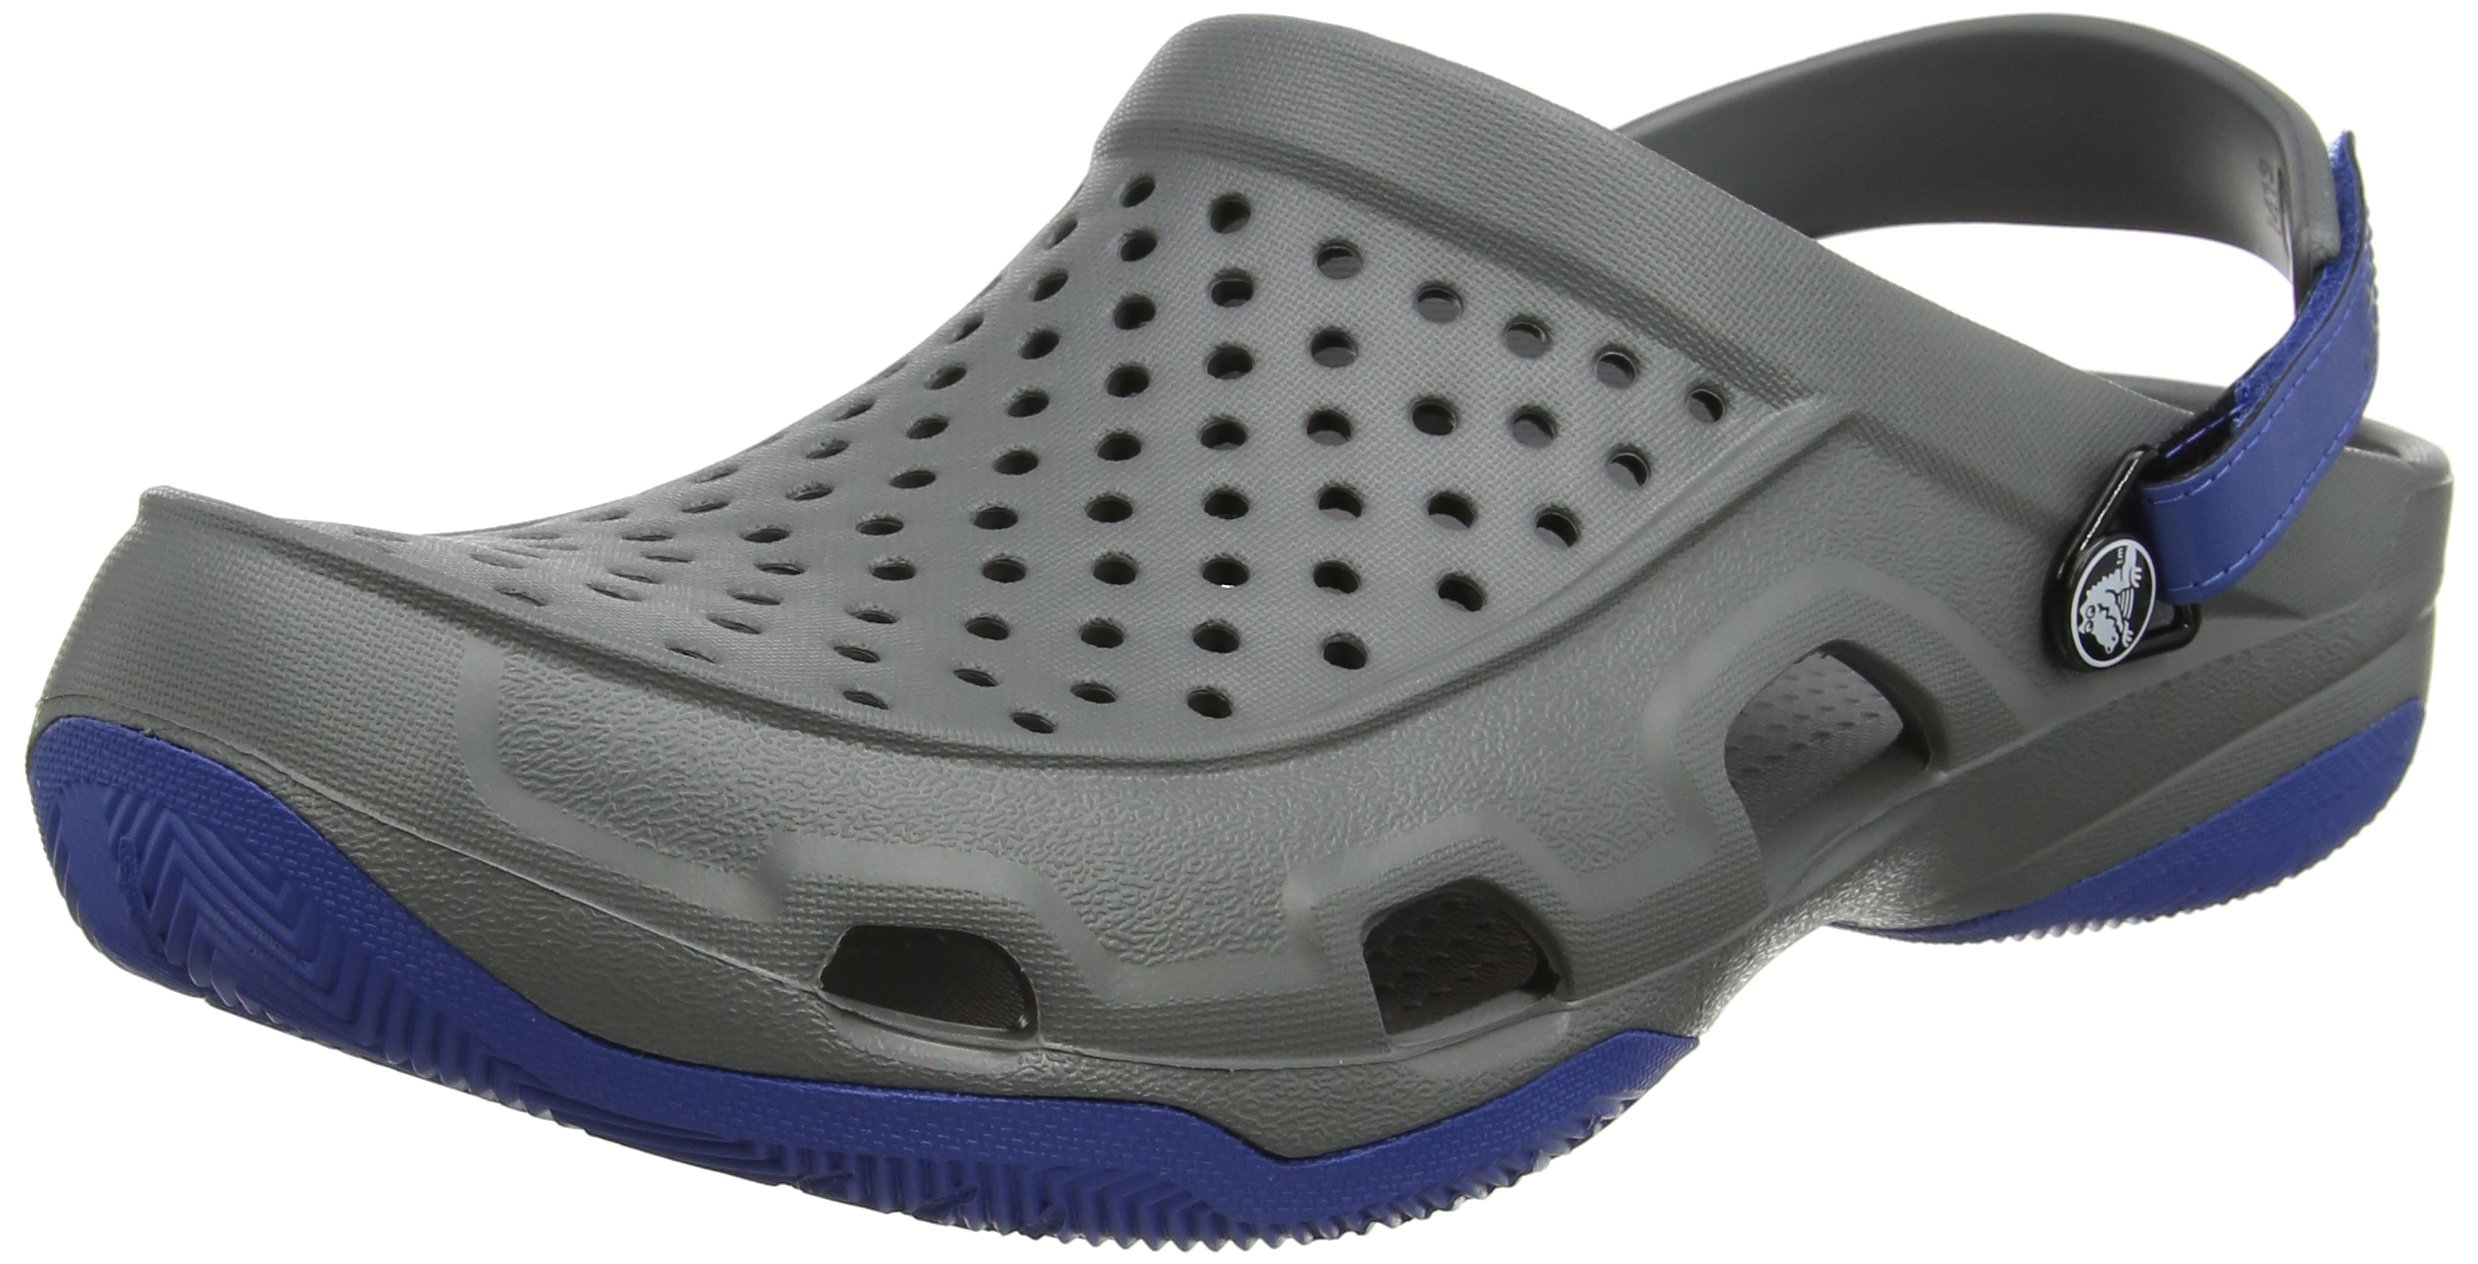 Crocs Men's Swiftwater Deck Clog M Mule, Slate Grey, 11 M US